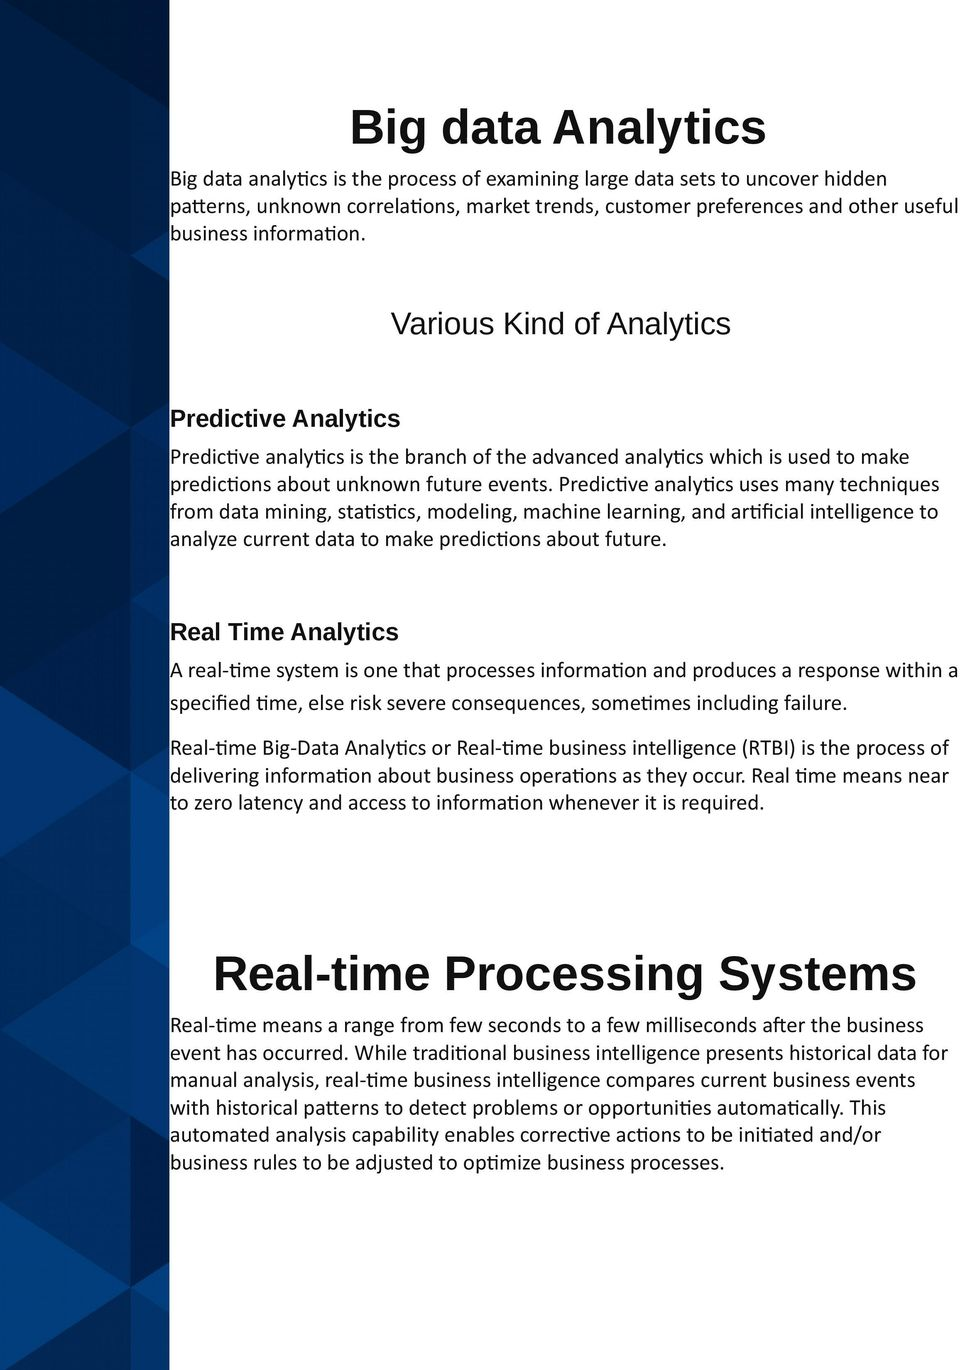 Predictive analytics uses many techniques from data mining, statistics, modeling, machine learning, and artificial intelligence to analyze current data to make predictions about future.